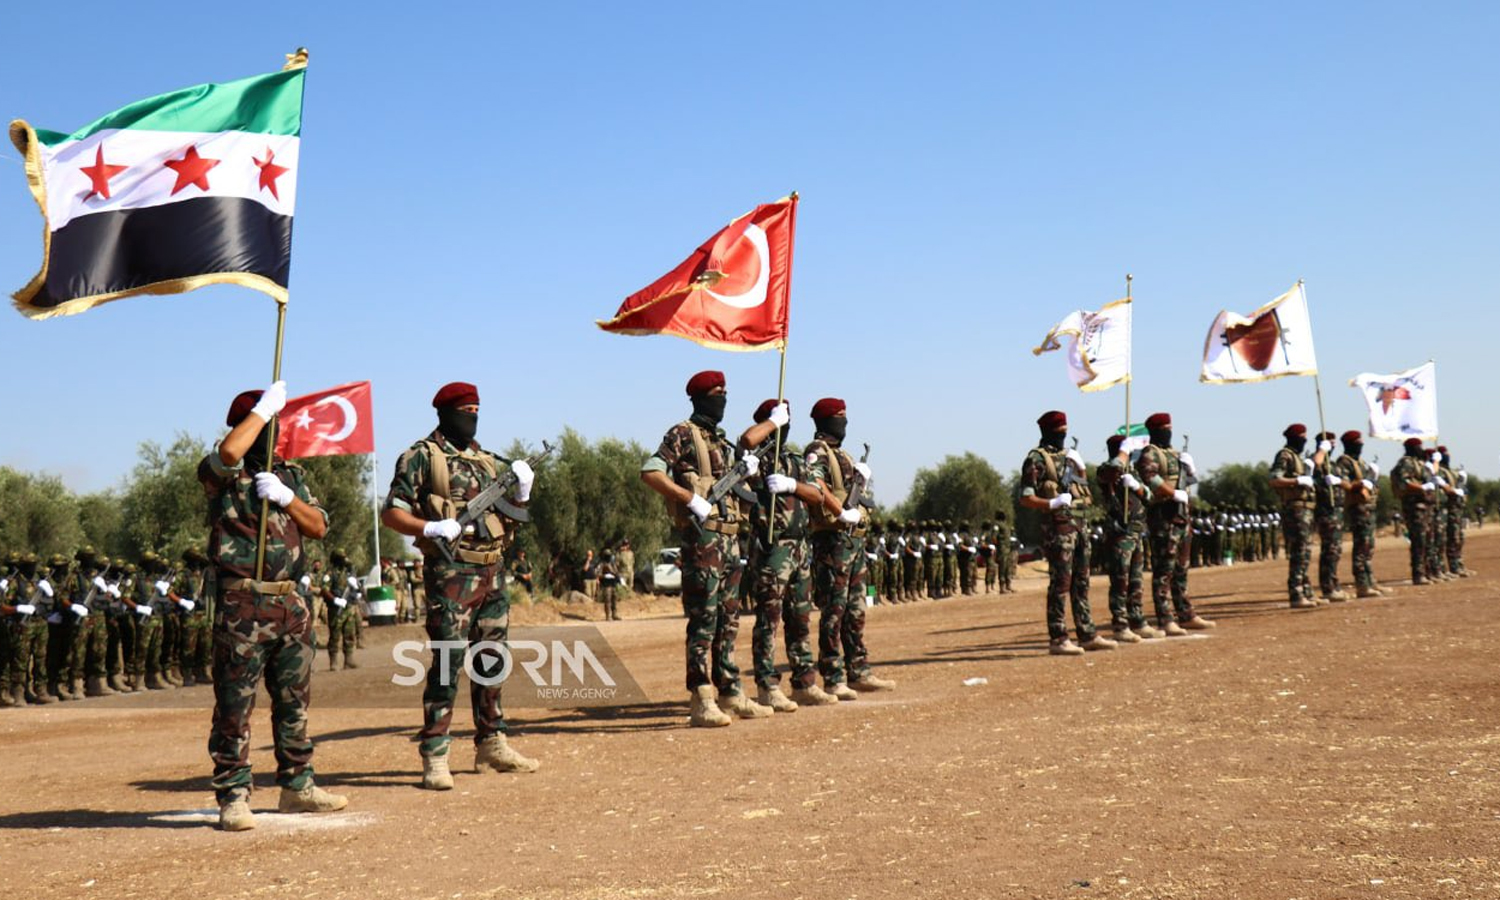 Graduation of fighters of the Syrian National Army (SNA's) Military Training Program the Wolves of the North – 7 July 2021 (Storm News Agency)